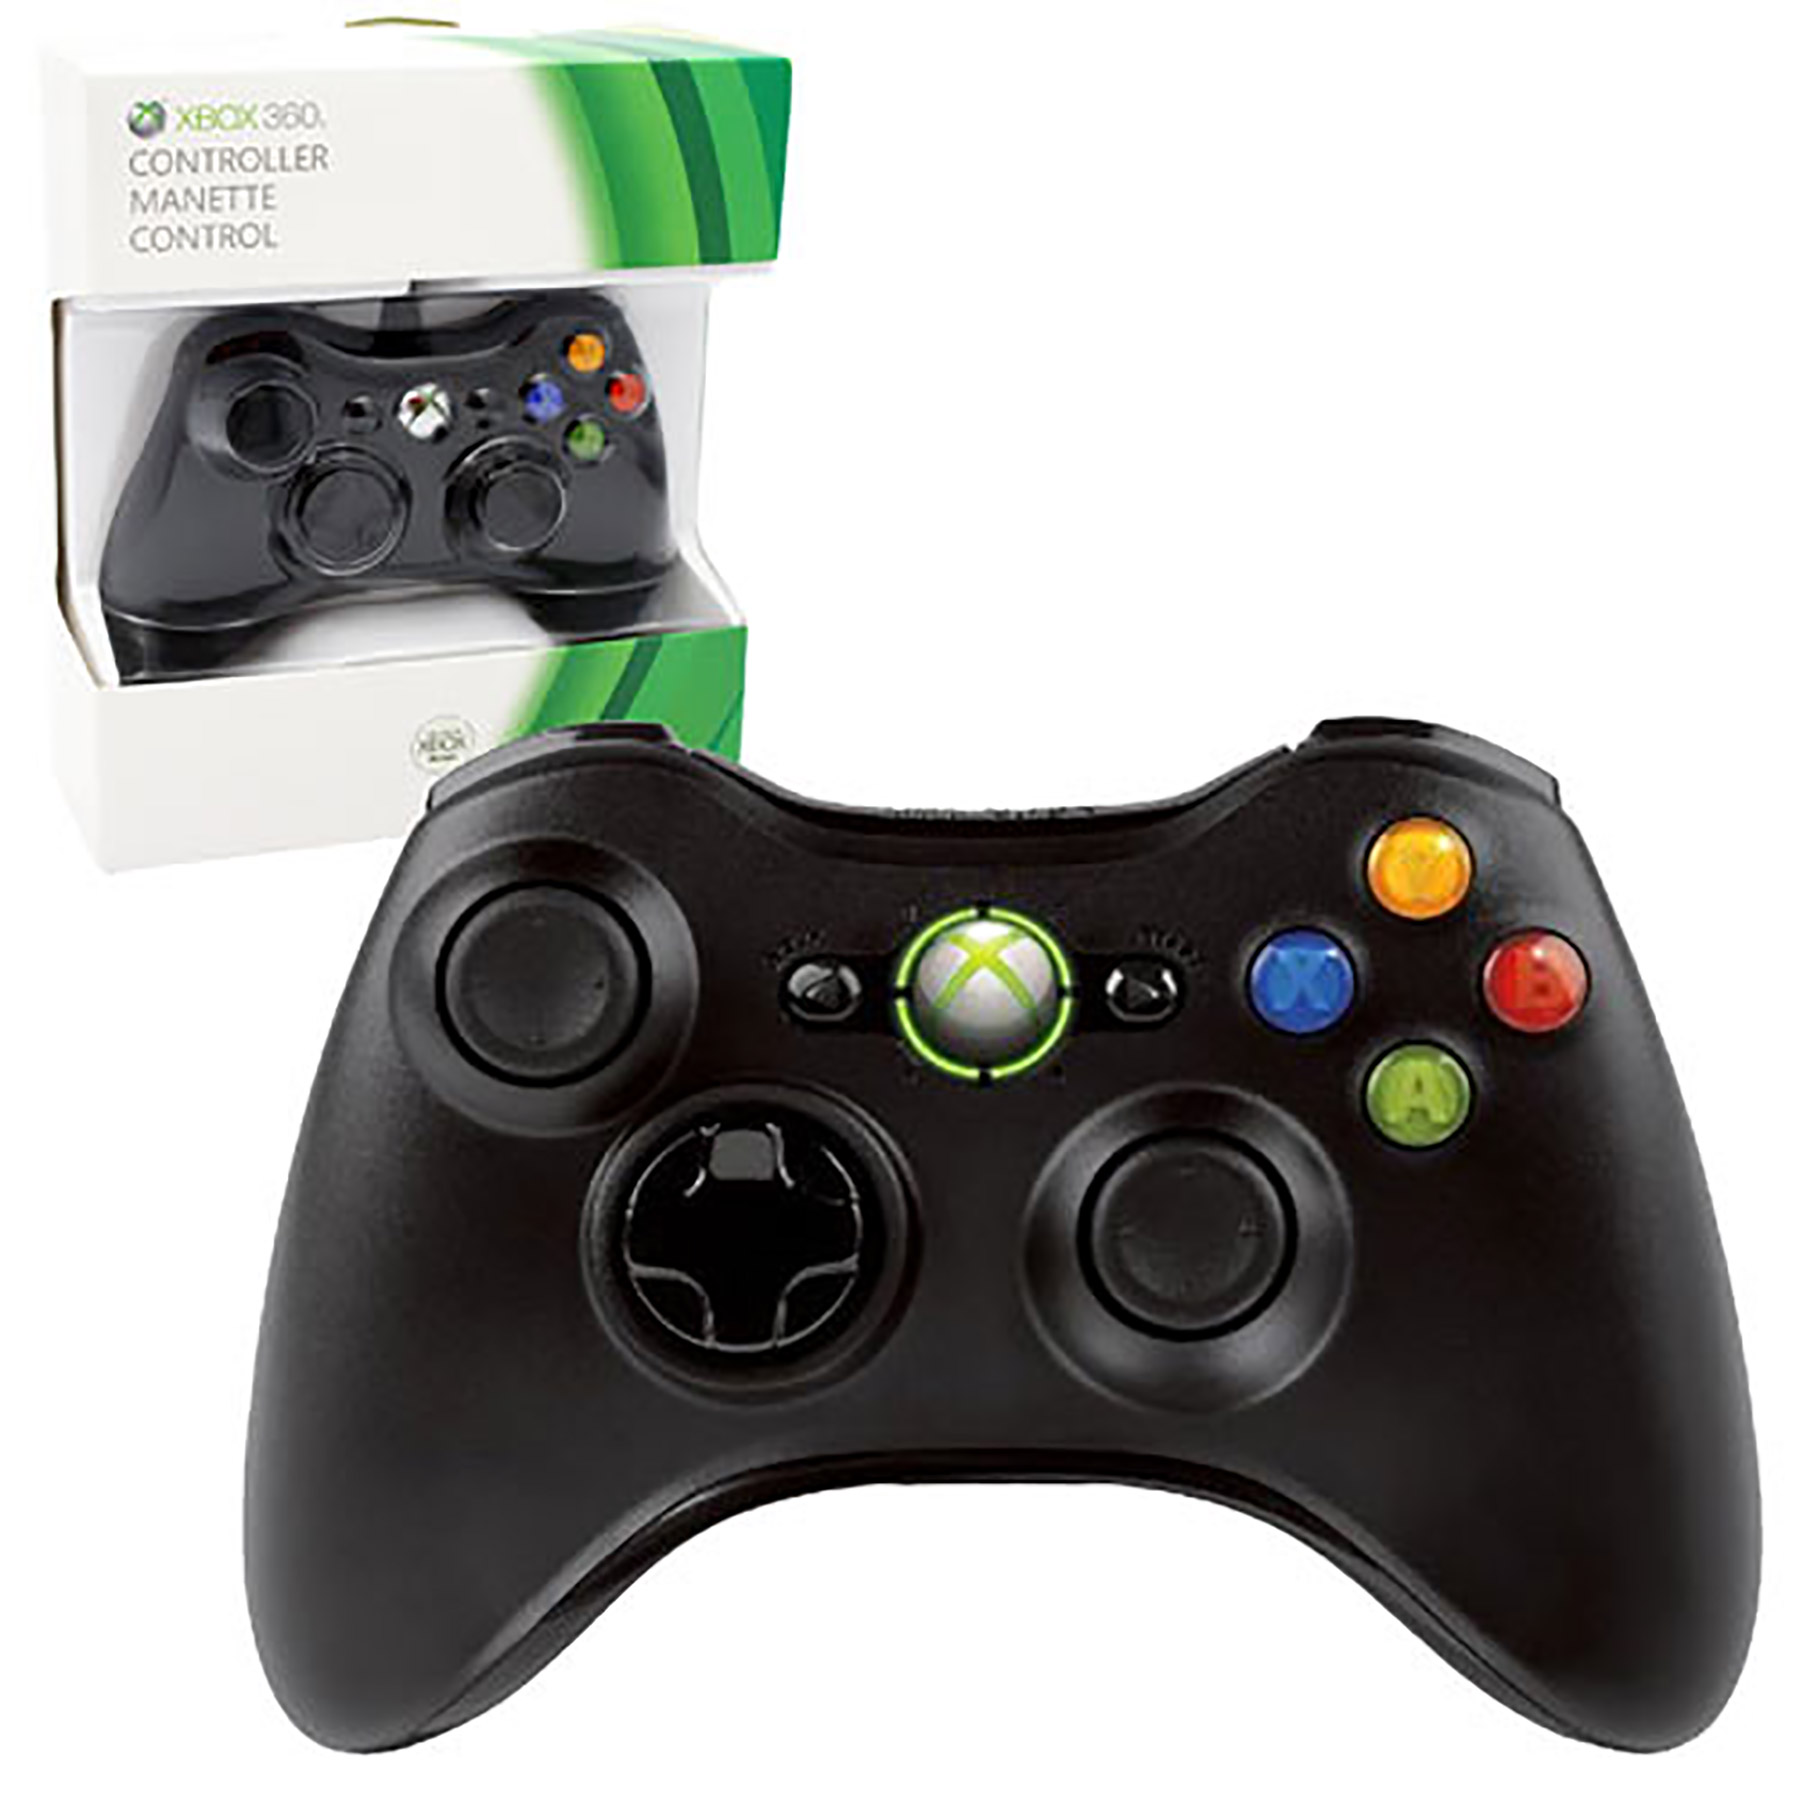 Xbox 360 Controller Wired Black Microsoft Game WorldXbox 360 Controller Wired